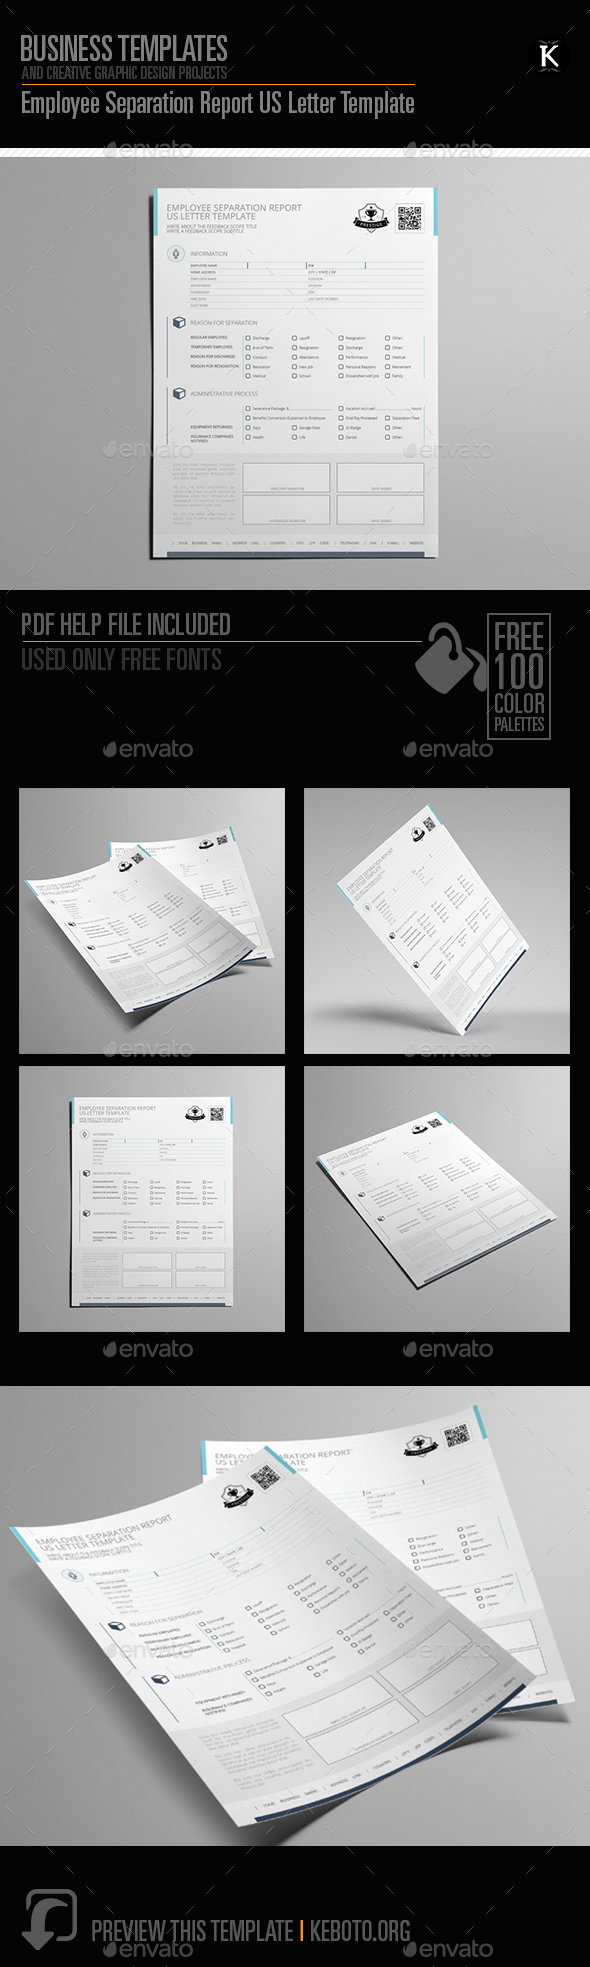 Employee Separation Report Us Letter Template By Keboto  Graphicriver